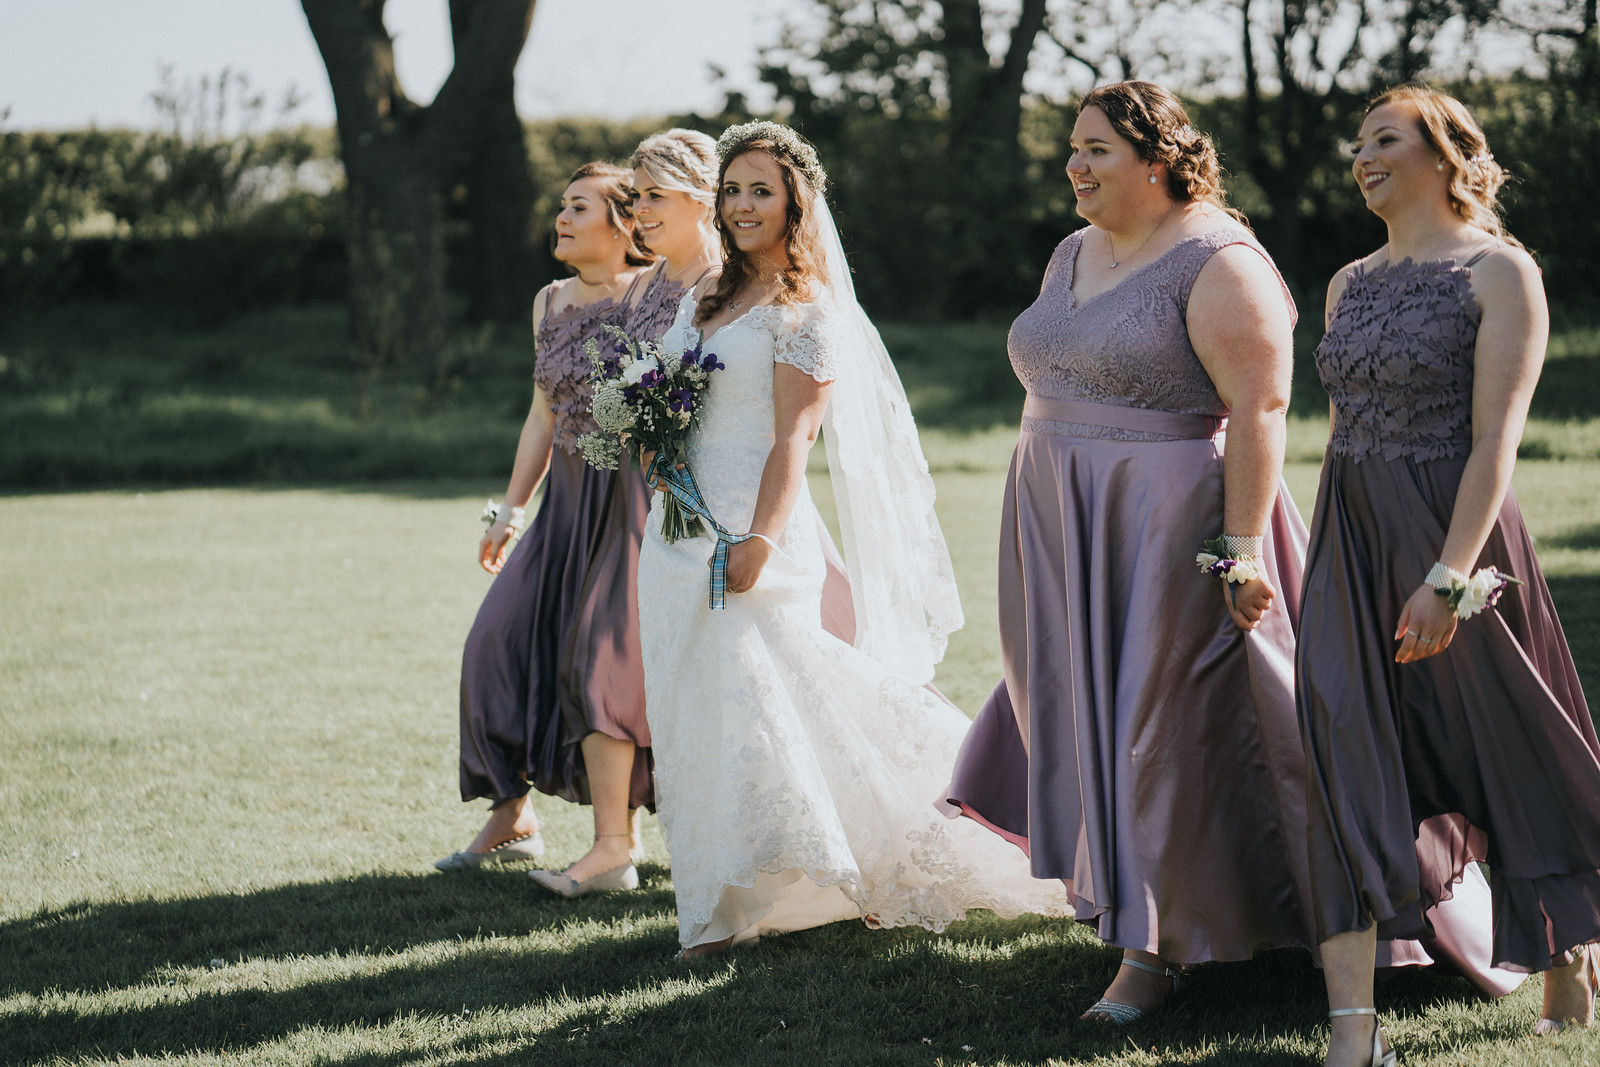 Bride and her bridesmaids - wedding photographers Northumberland